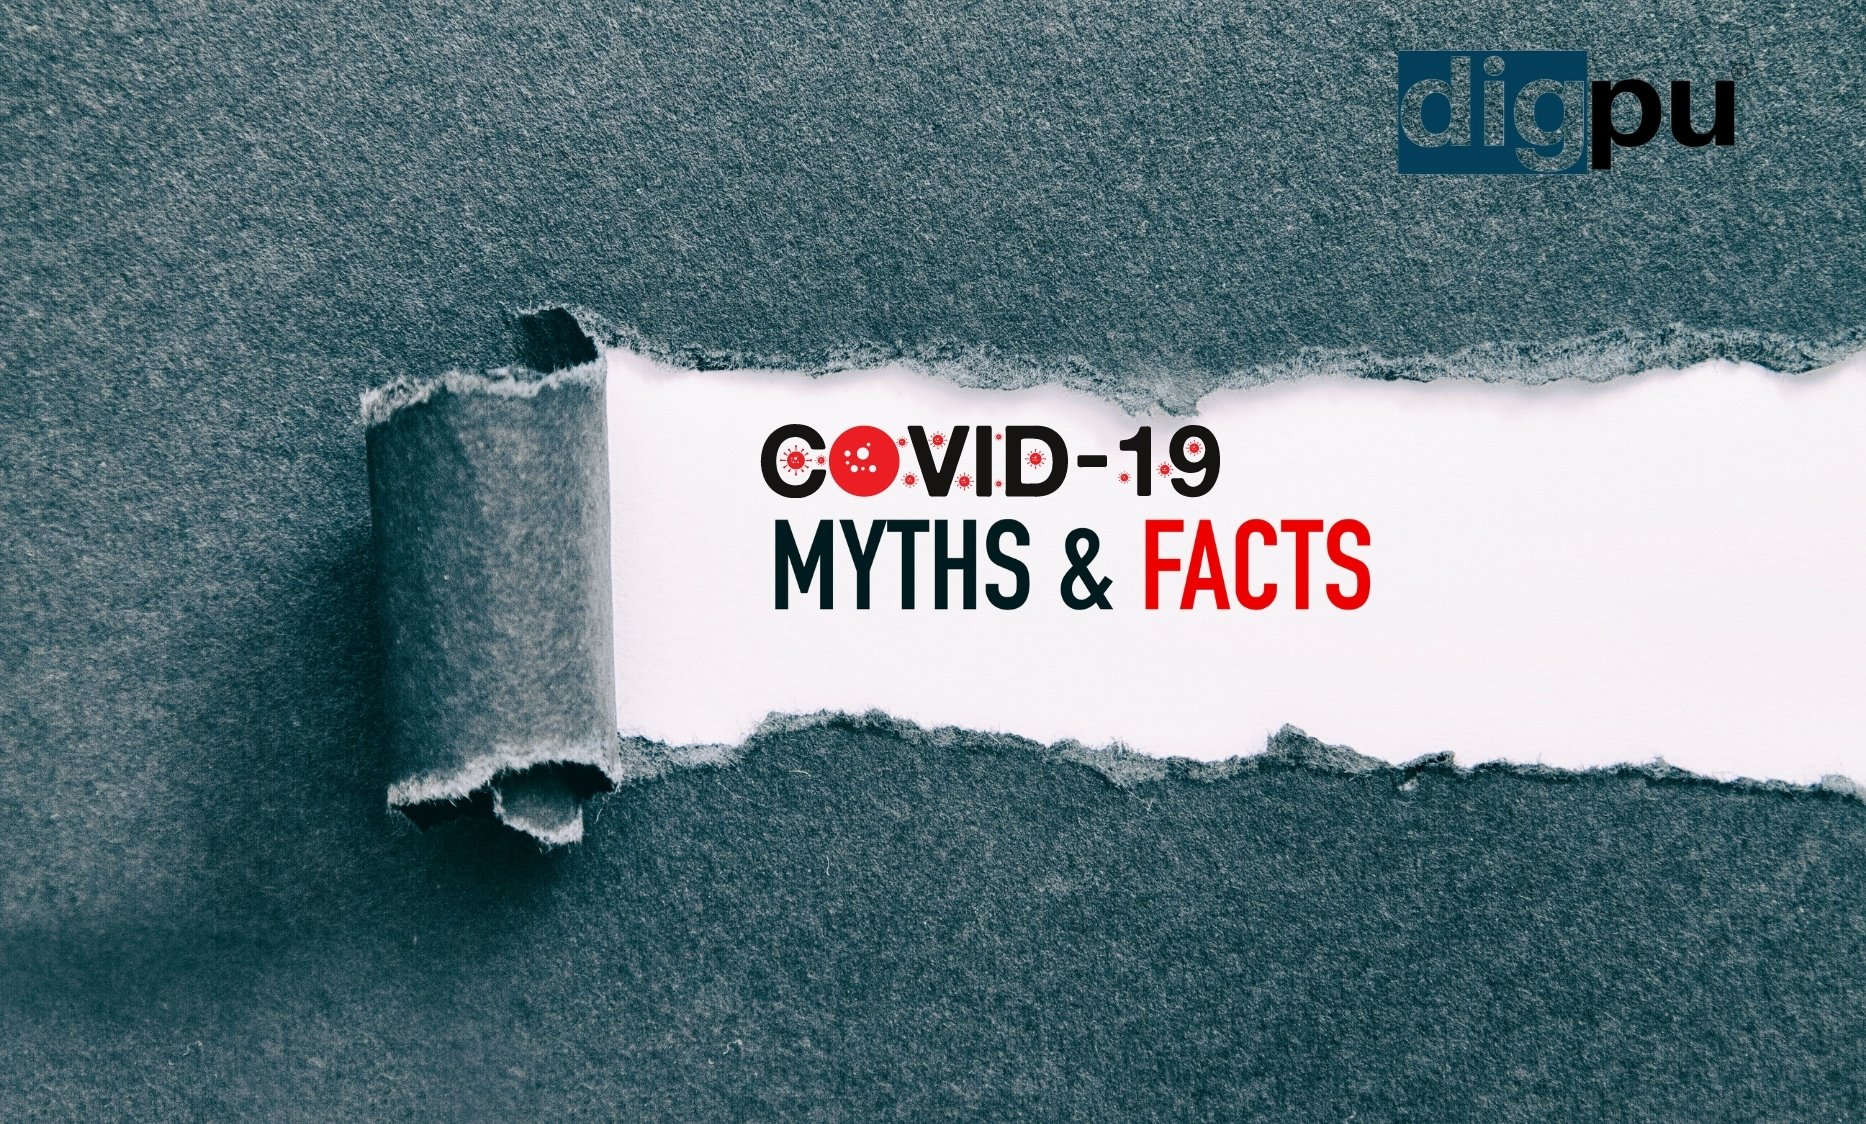 Covid-19 Myths in India